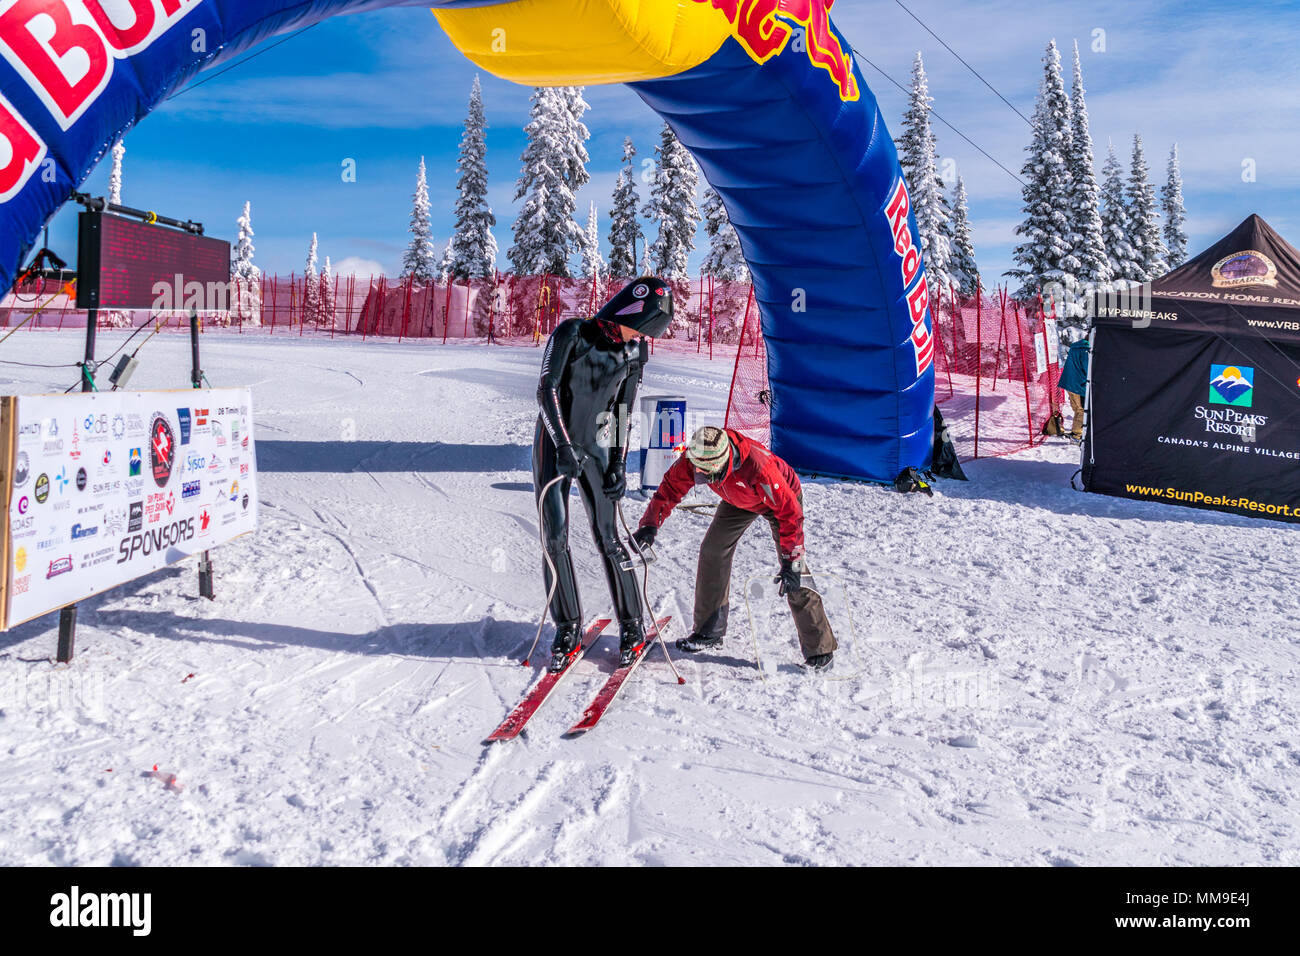 International Velocity races at the famous international ski resort of Sun Peaks in beautiful British Columbia, Canada - Stock Image